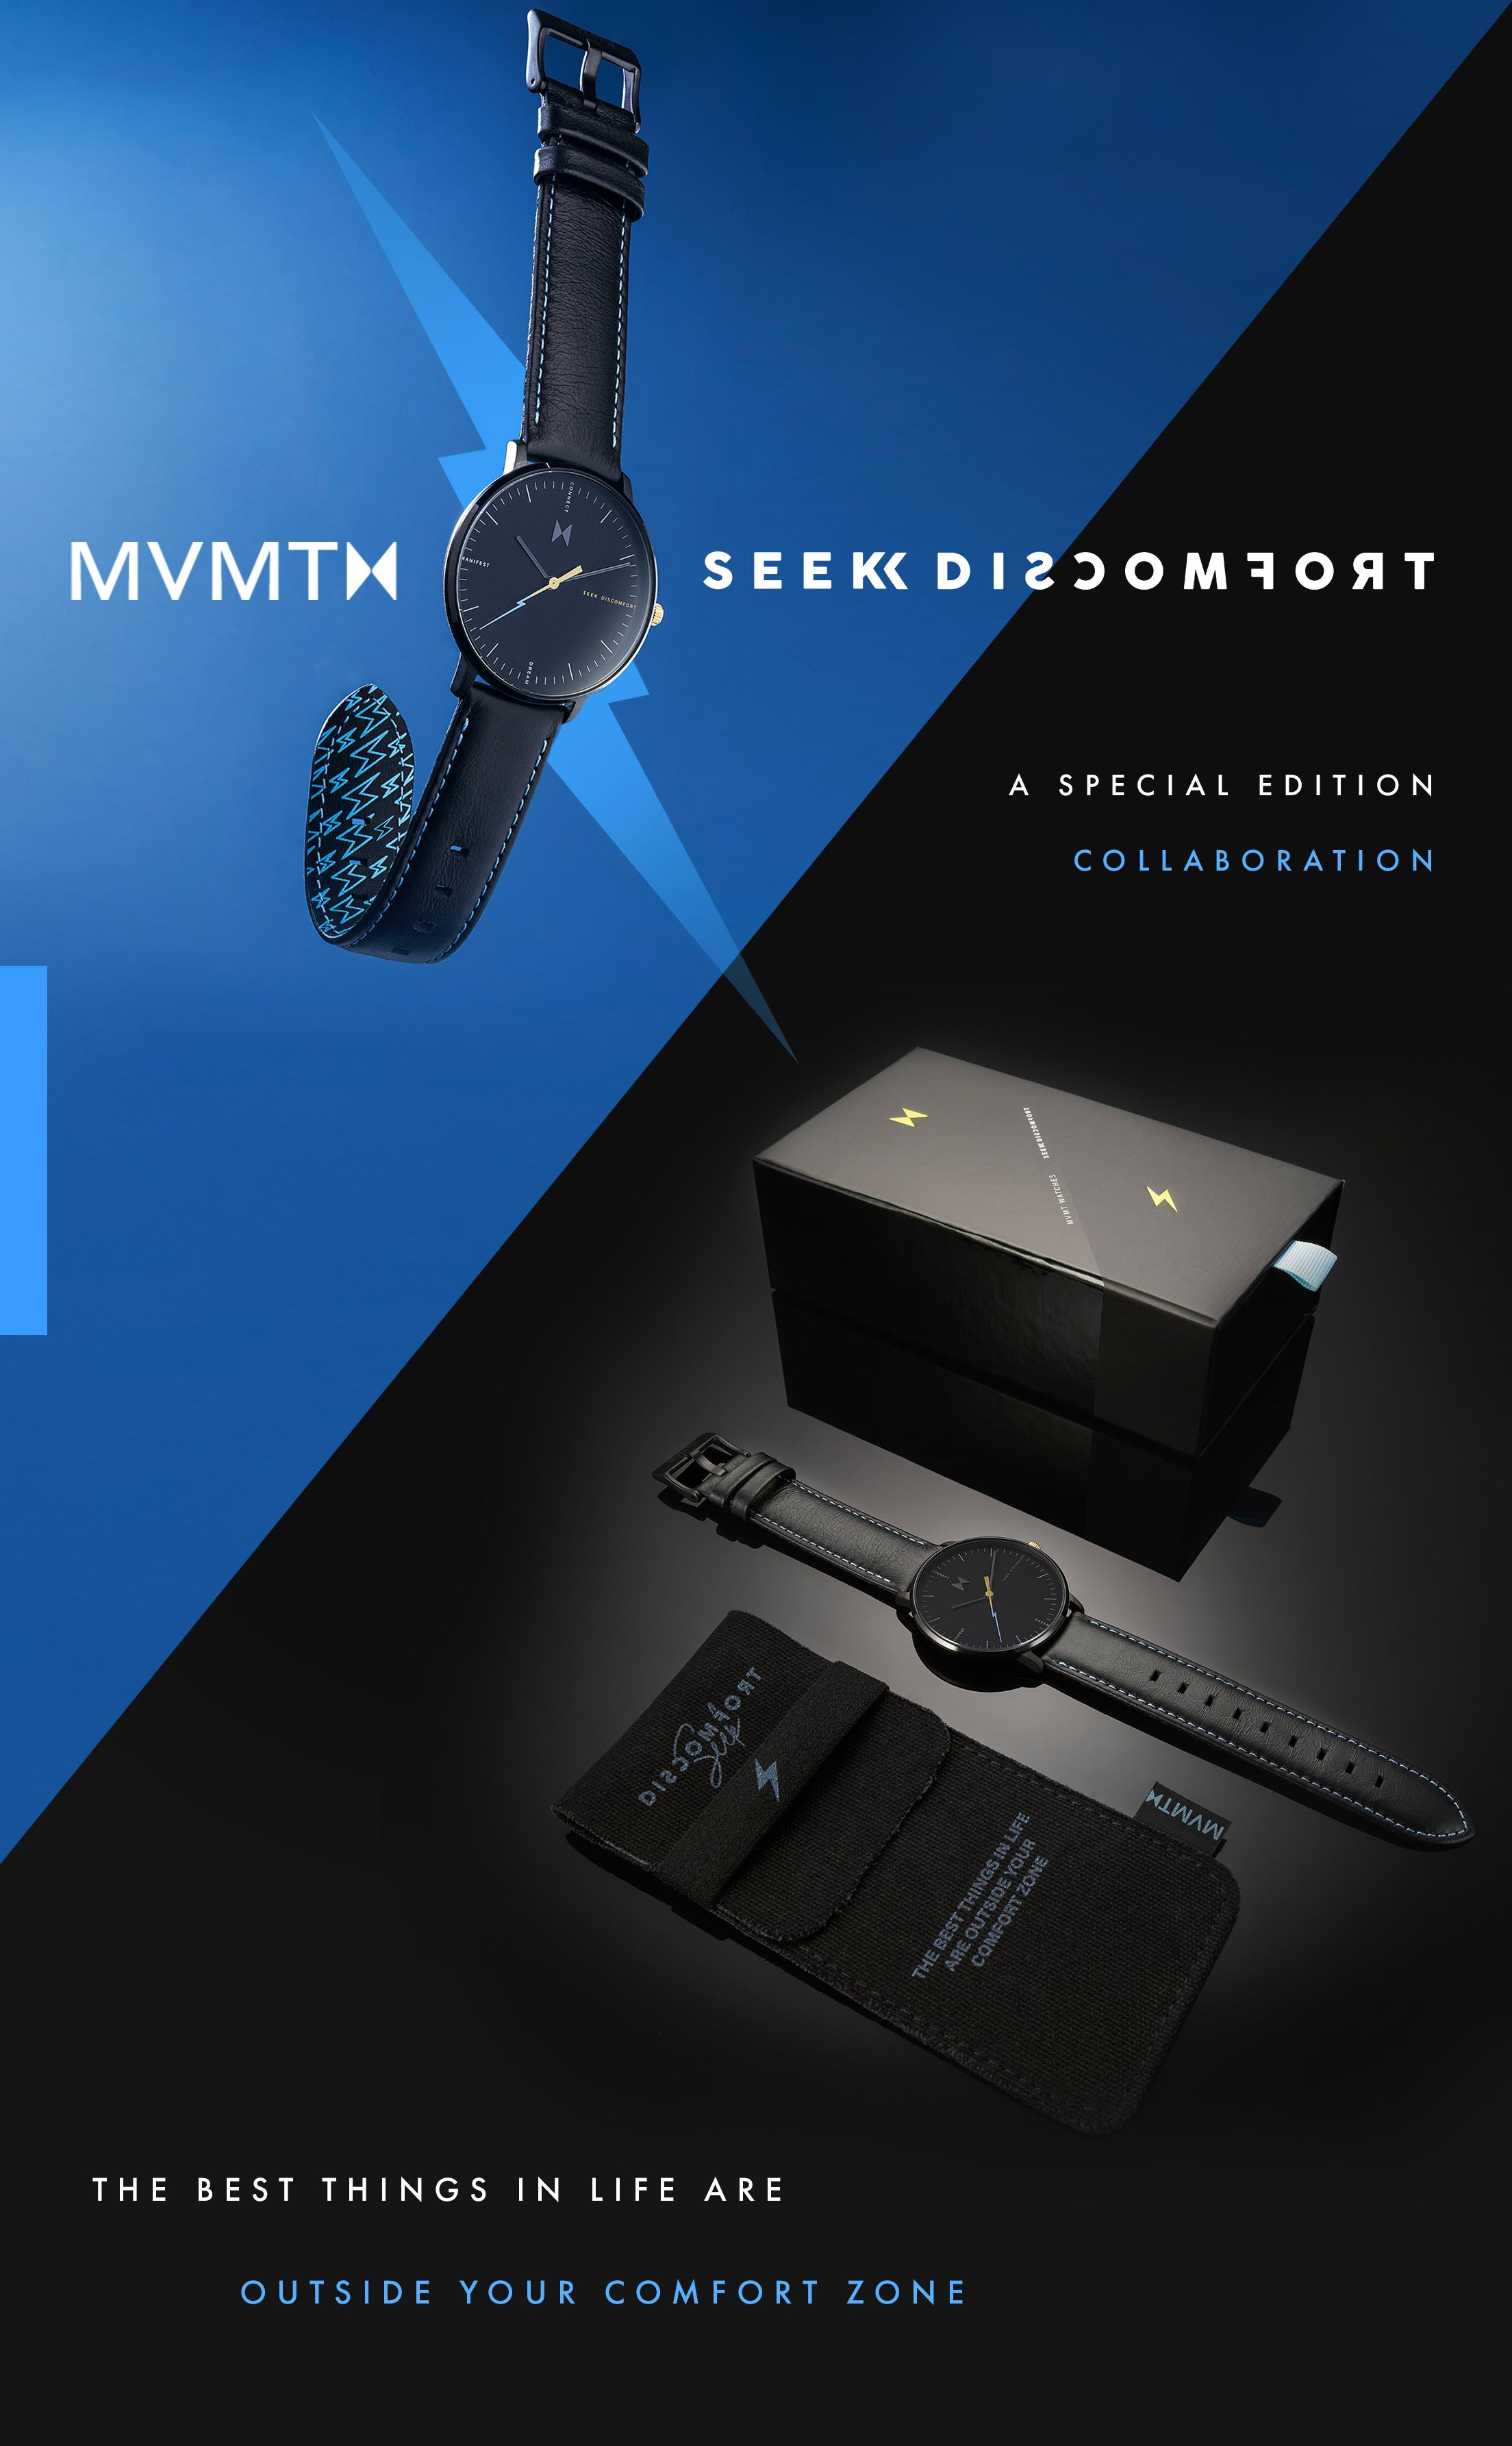 MVMT Seek Discomfort: A special edition collaboration. The best things in life are outside your comfort zone.